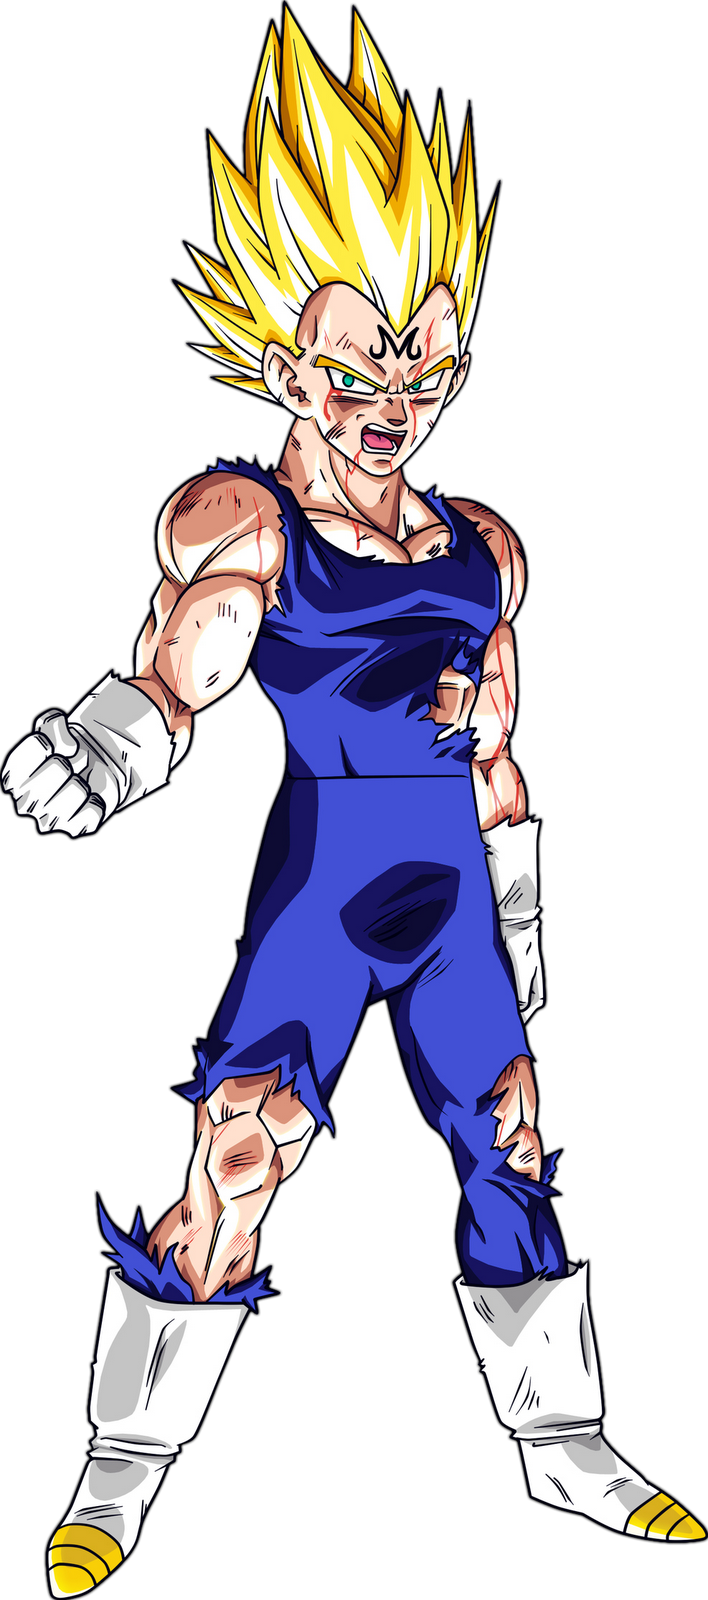 zat renders render dragon ball